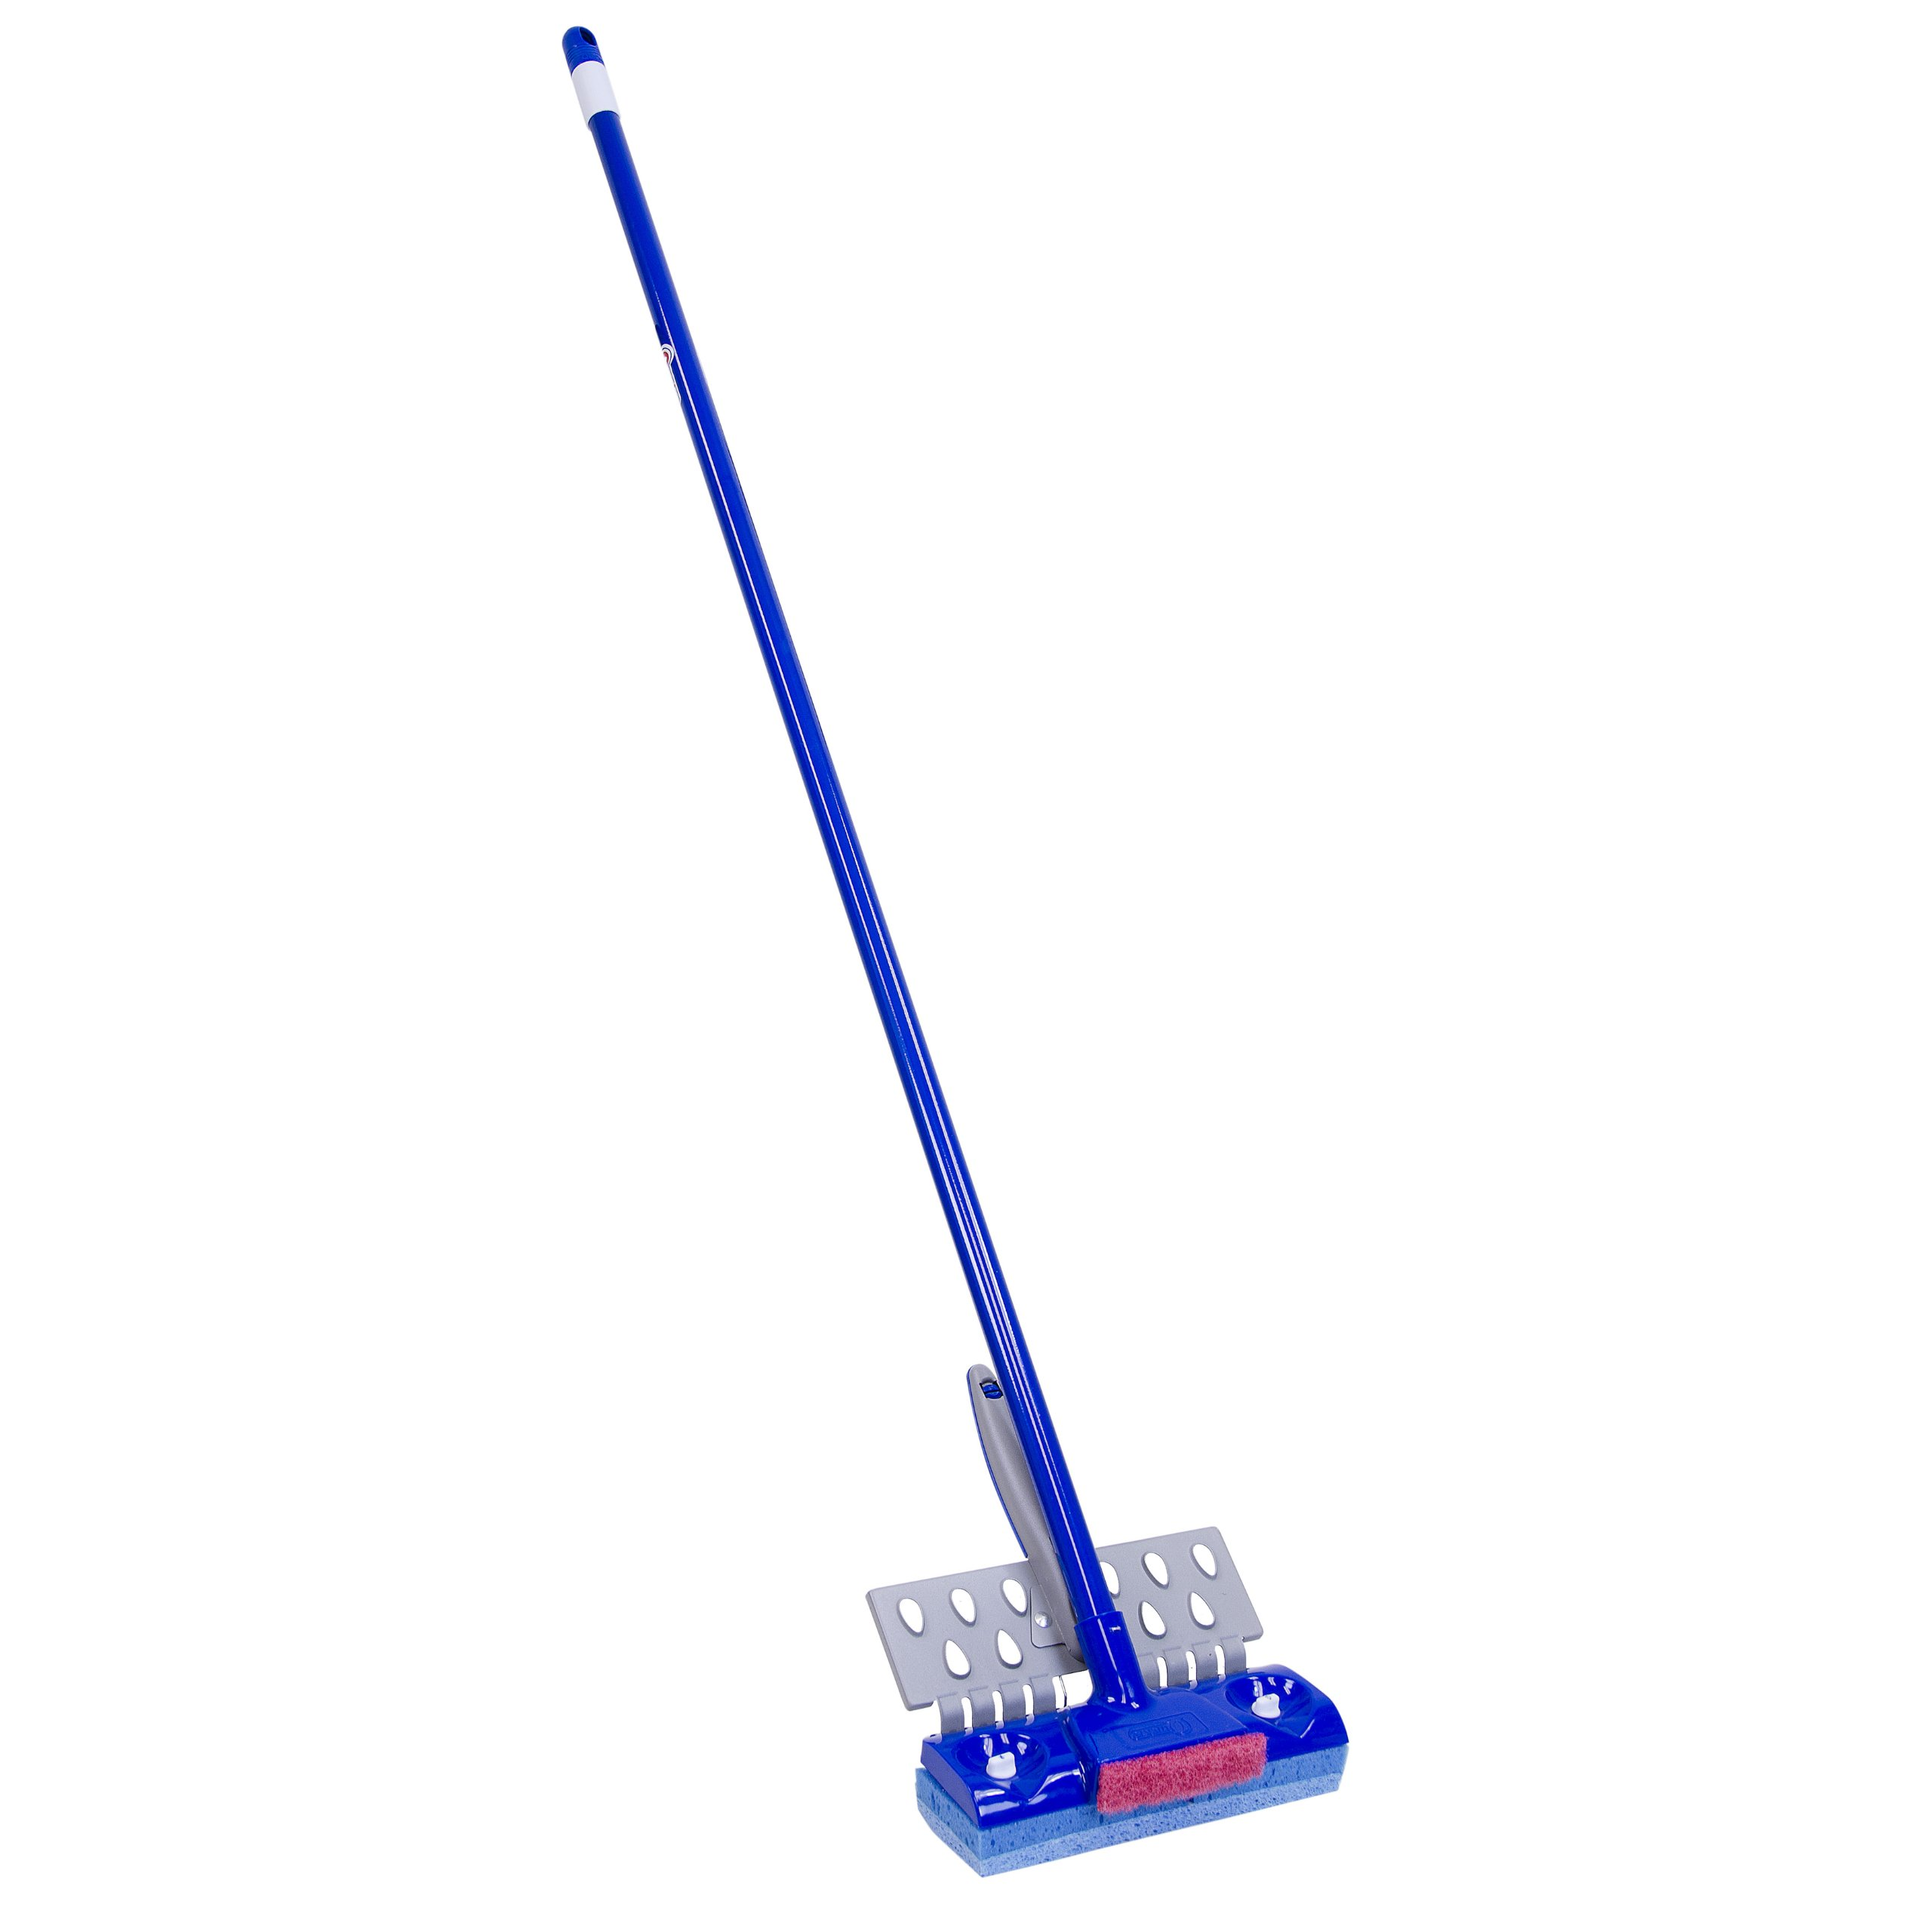 Quickie 051TRI Squeeze Sponge Mop by Quickie (Image #1)